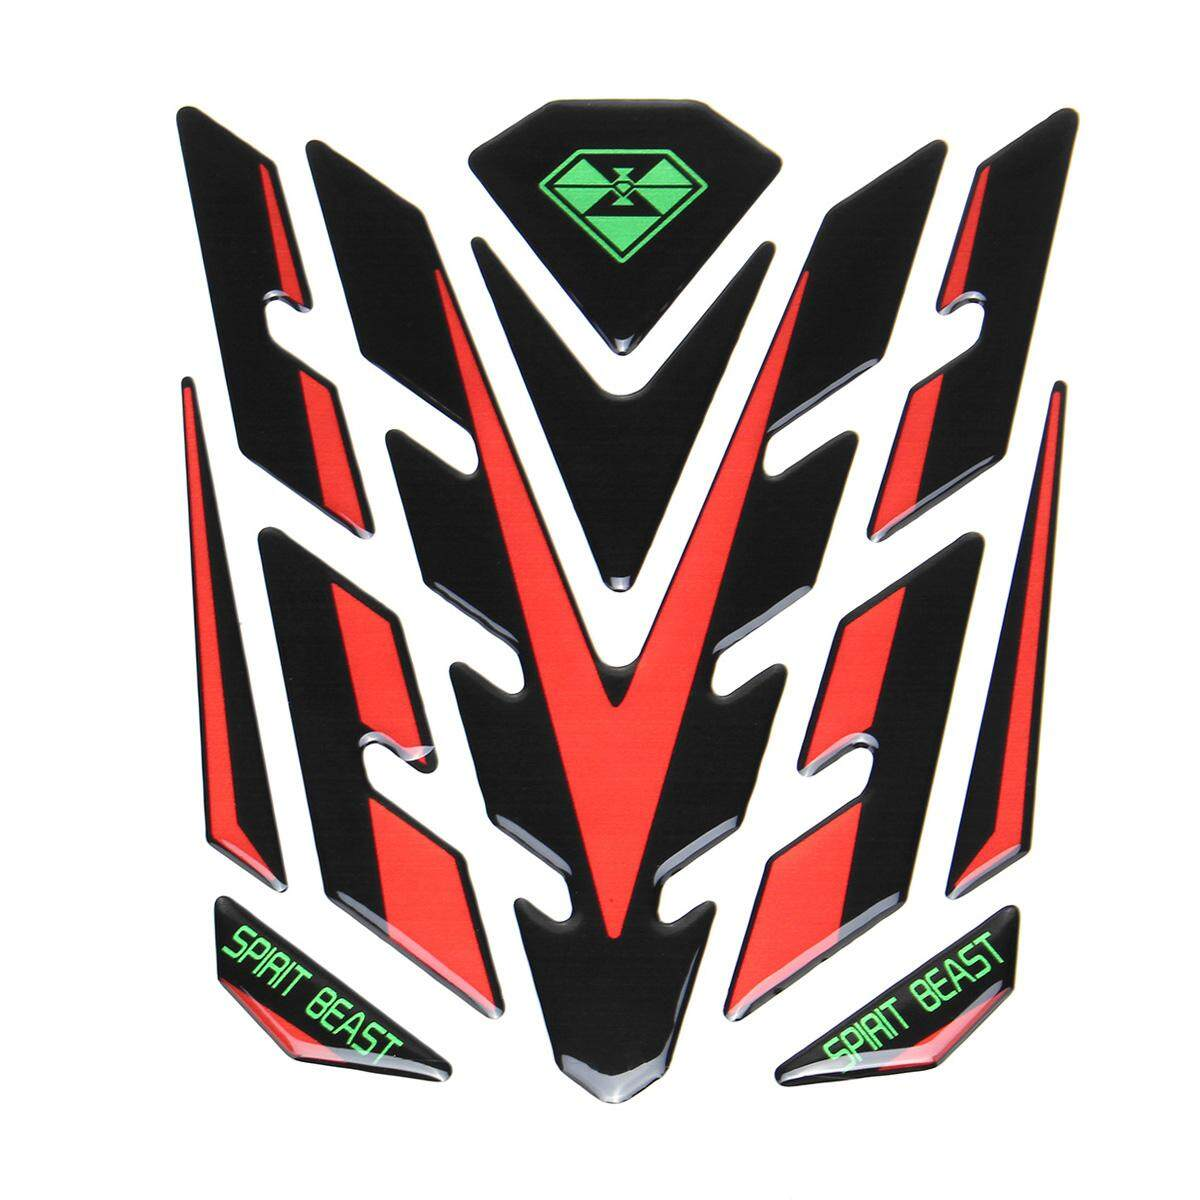 Spirit Beast Reflective 3D Motorcycle Sticker Moto Gas Fue l Tank Protector Pad Cover Decoration Decals